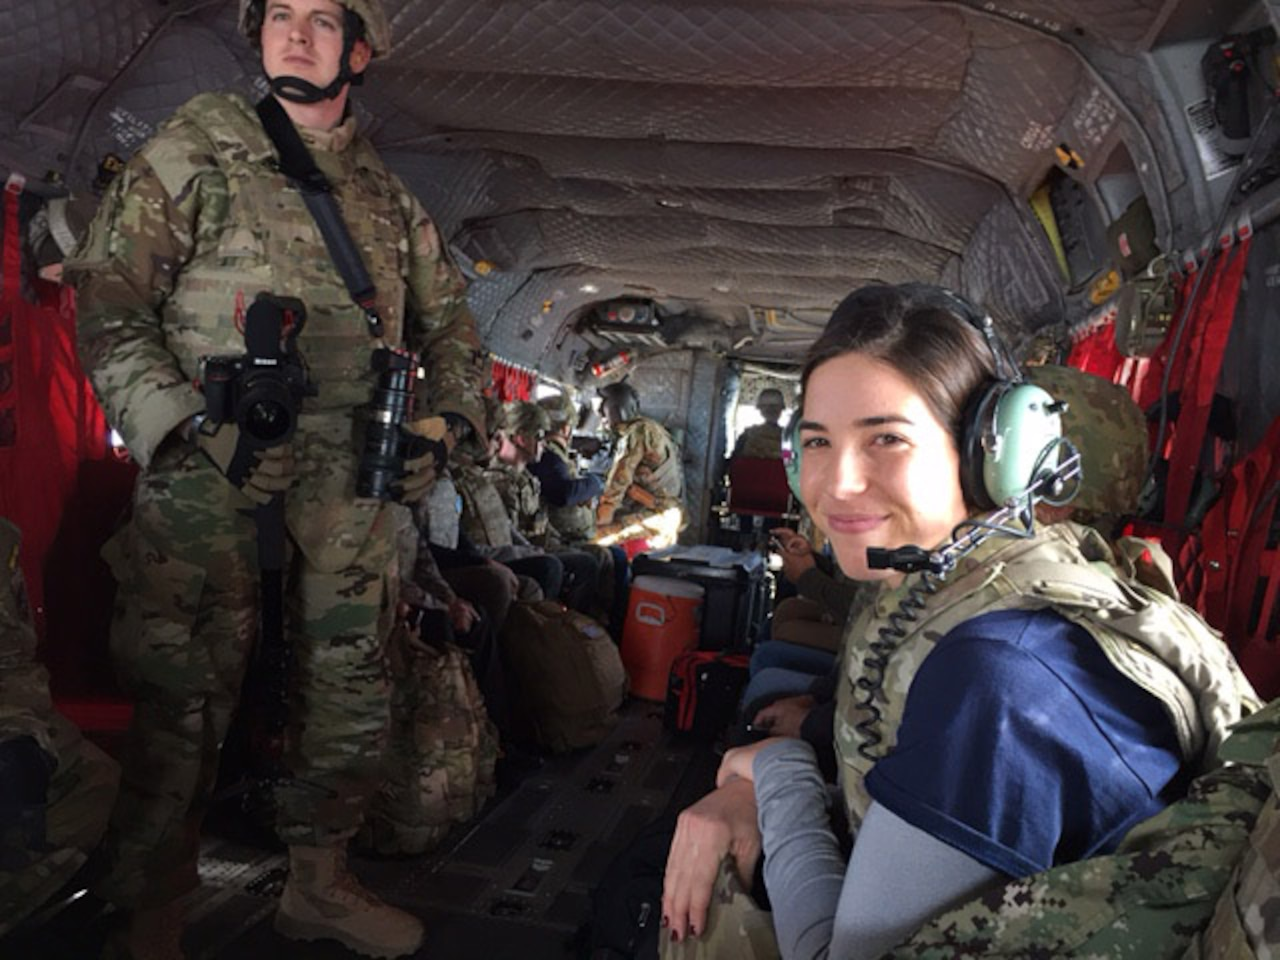 Olympic gold medalist Maya DiRado rides in a CH-47 helicopter to Forward Operating Base Gamberi, Afghanistan, as part of the 2016 Holiday USO Tour, Dec. 7, 2016. DoD photo by Jim Garamone